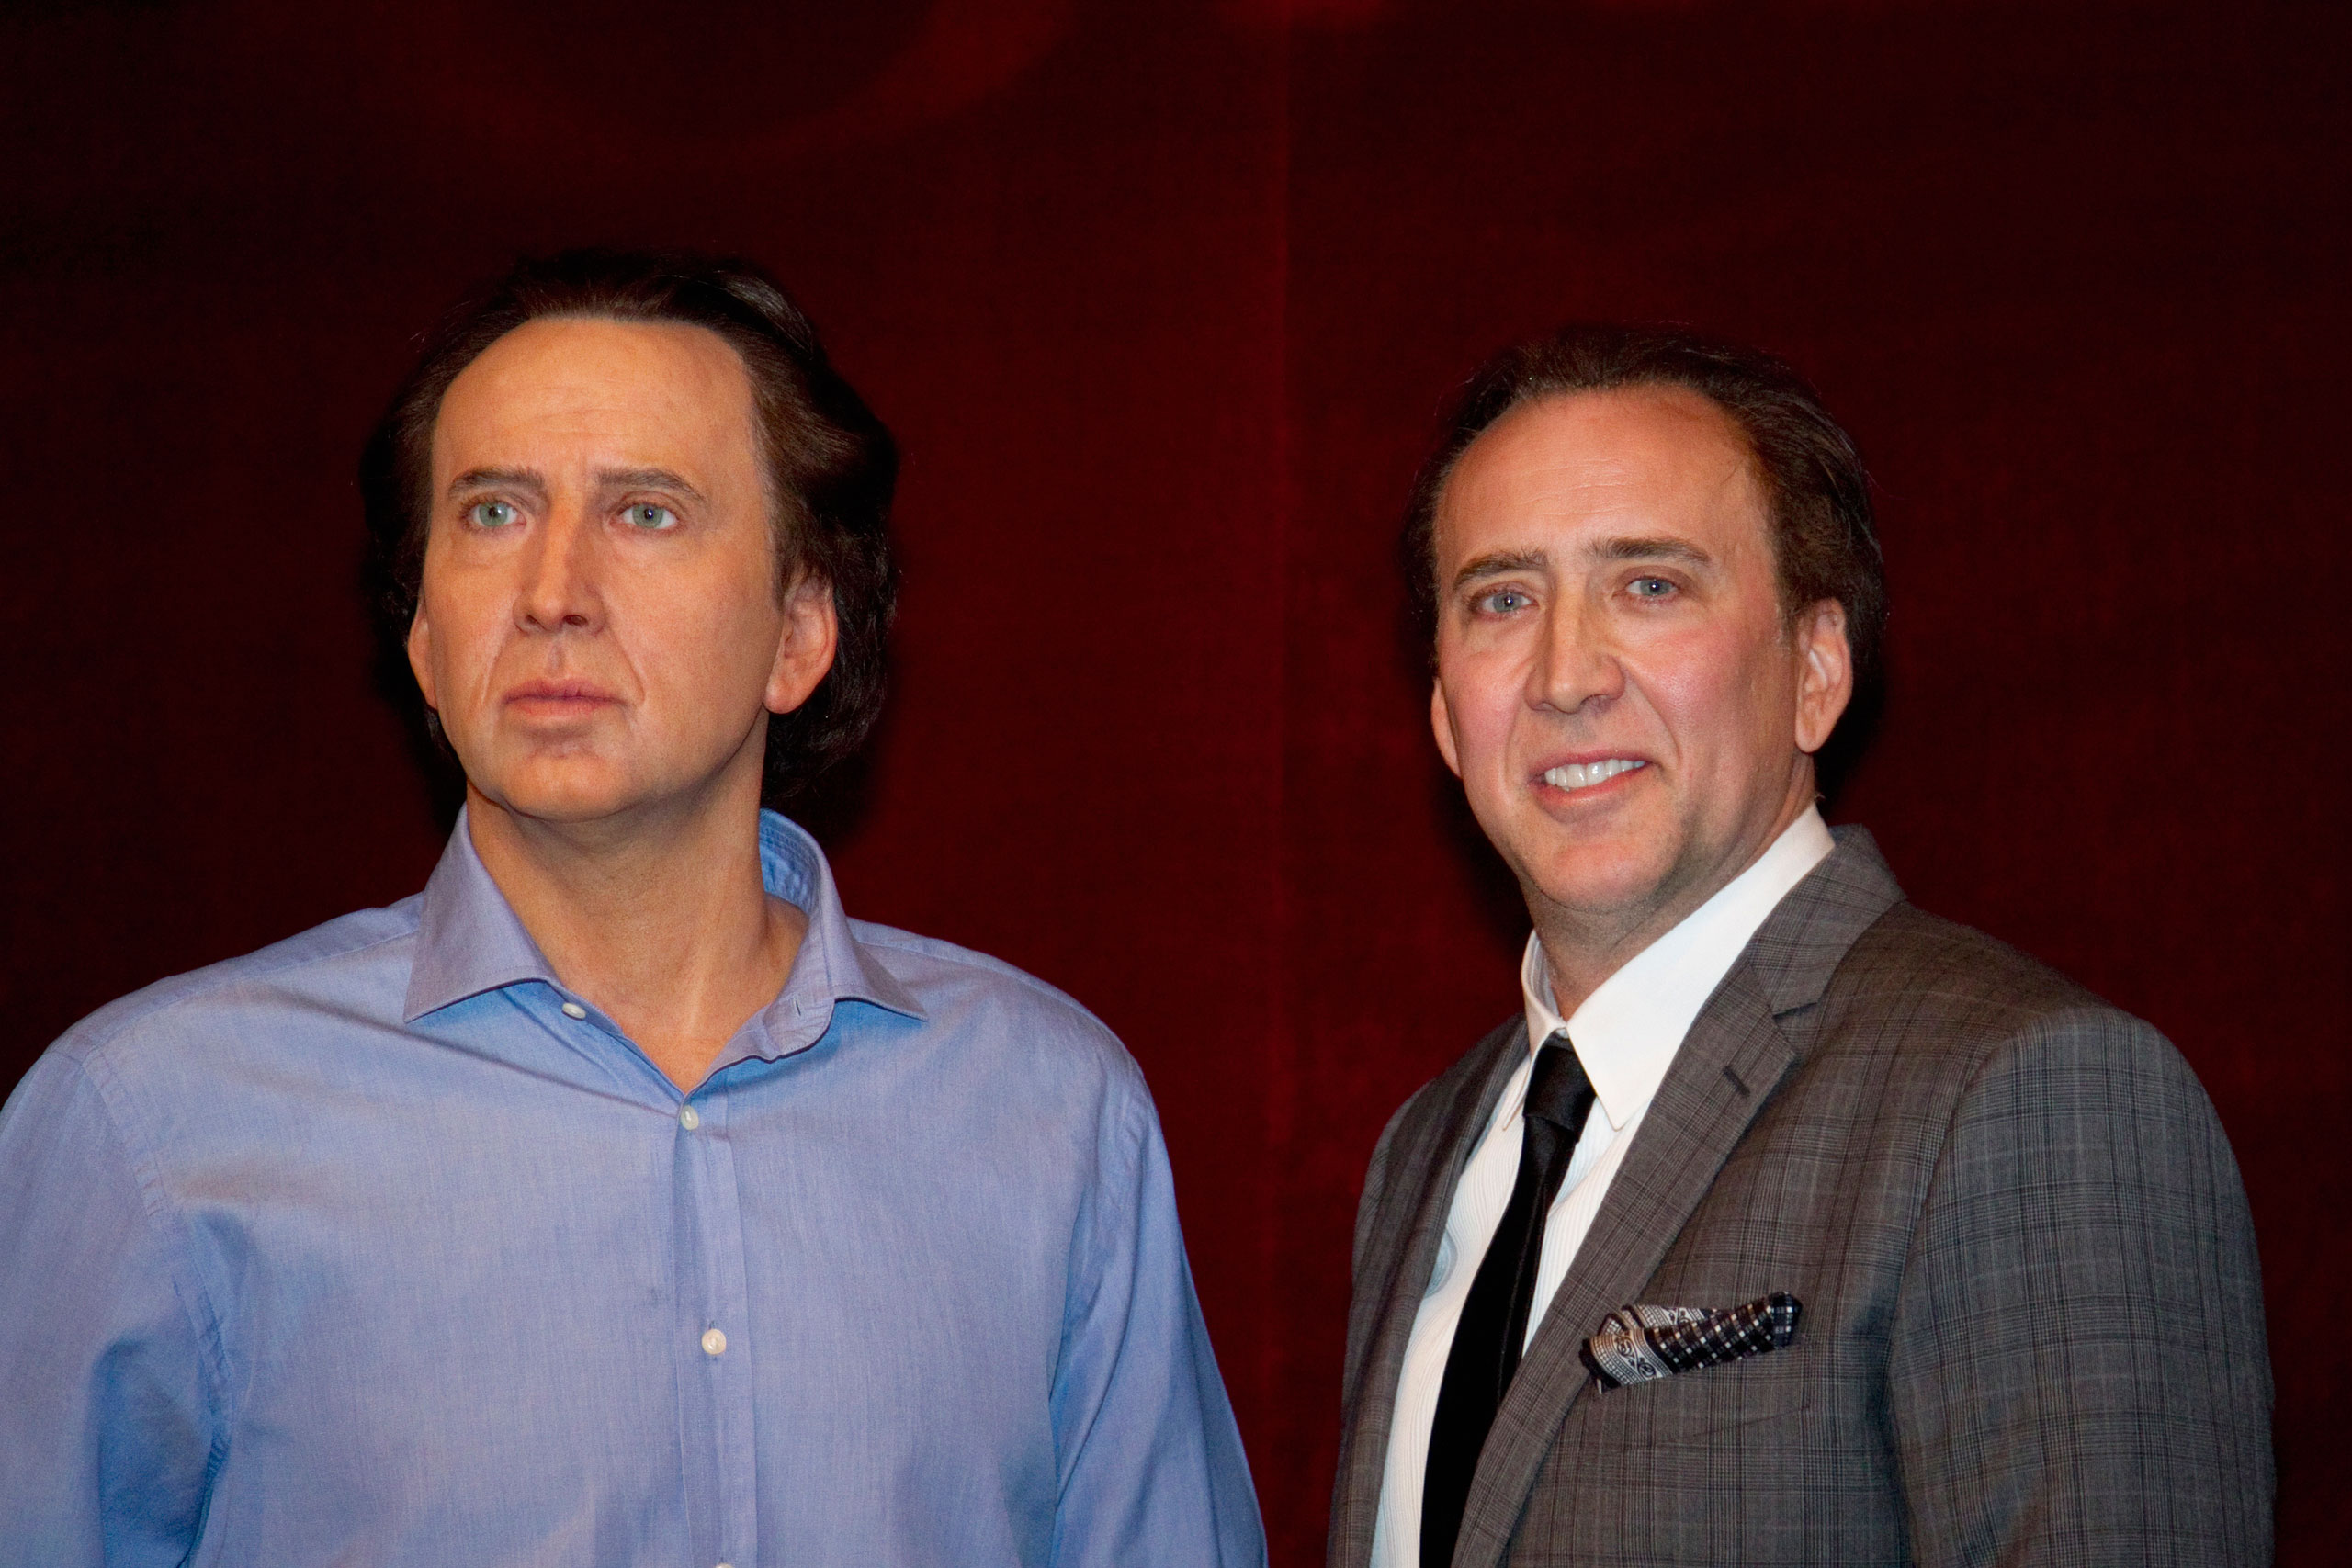 Nicolas Cage, right, stands next to his figure at the Grevin wax museum in Paris on  Jan. 29, 2012.